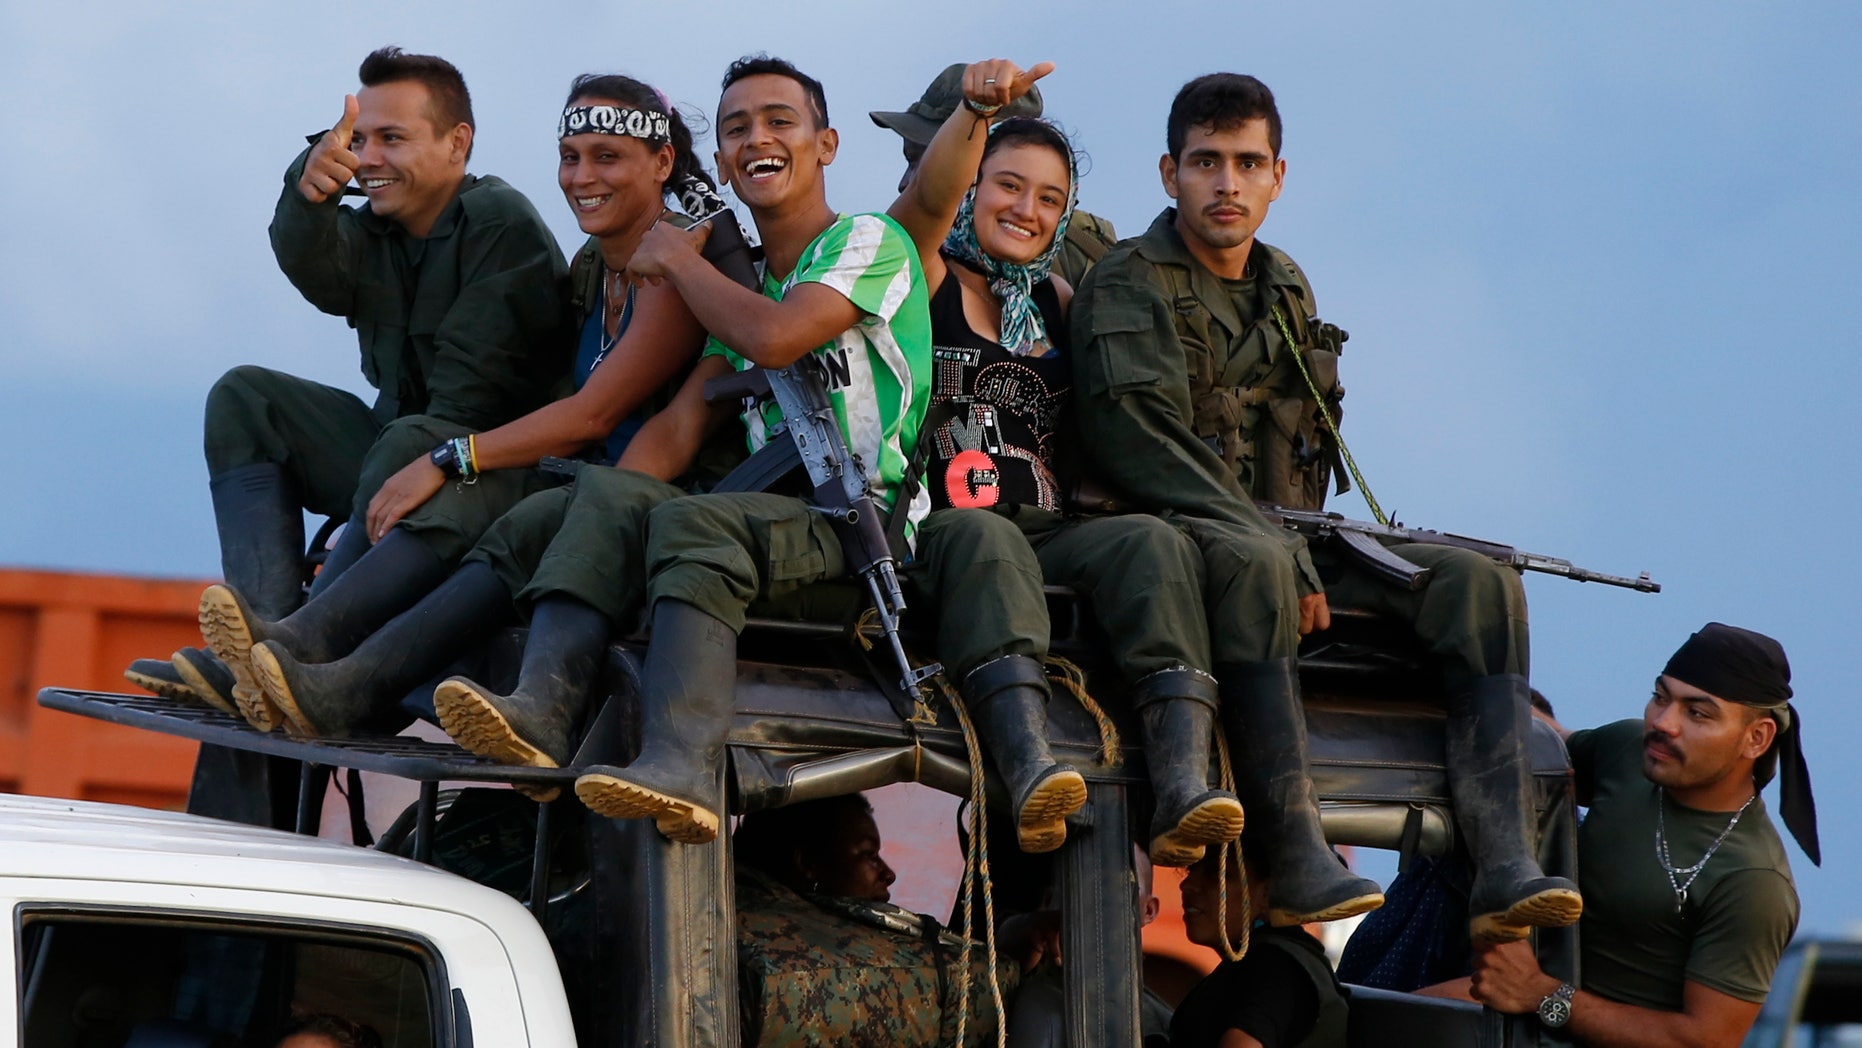 Rebels of the Revolutionary Armed Forces of Colombia (FARC) arrive to El Diamante in southern Colombia, Friday, Sept. 16, 2016. FARC rebels are gathering for a congress to discuss and vote on a peace accord reached with the Colombian government to end five decades of war.